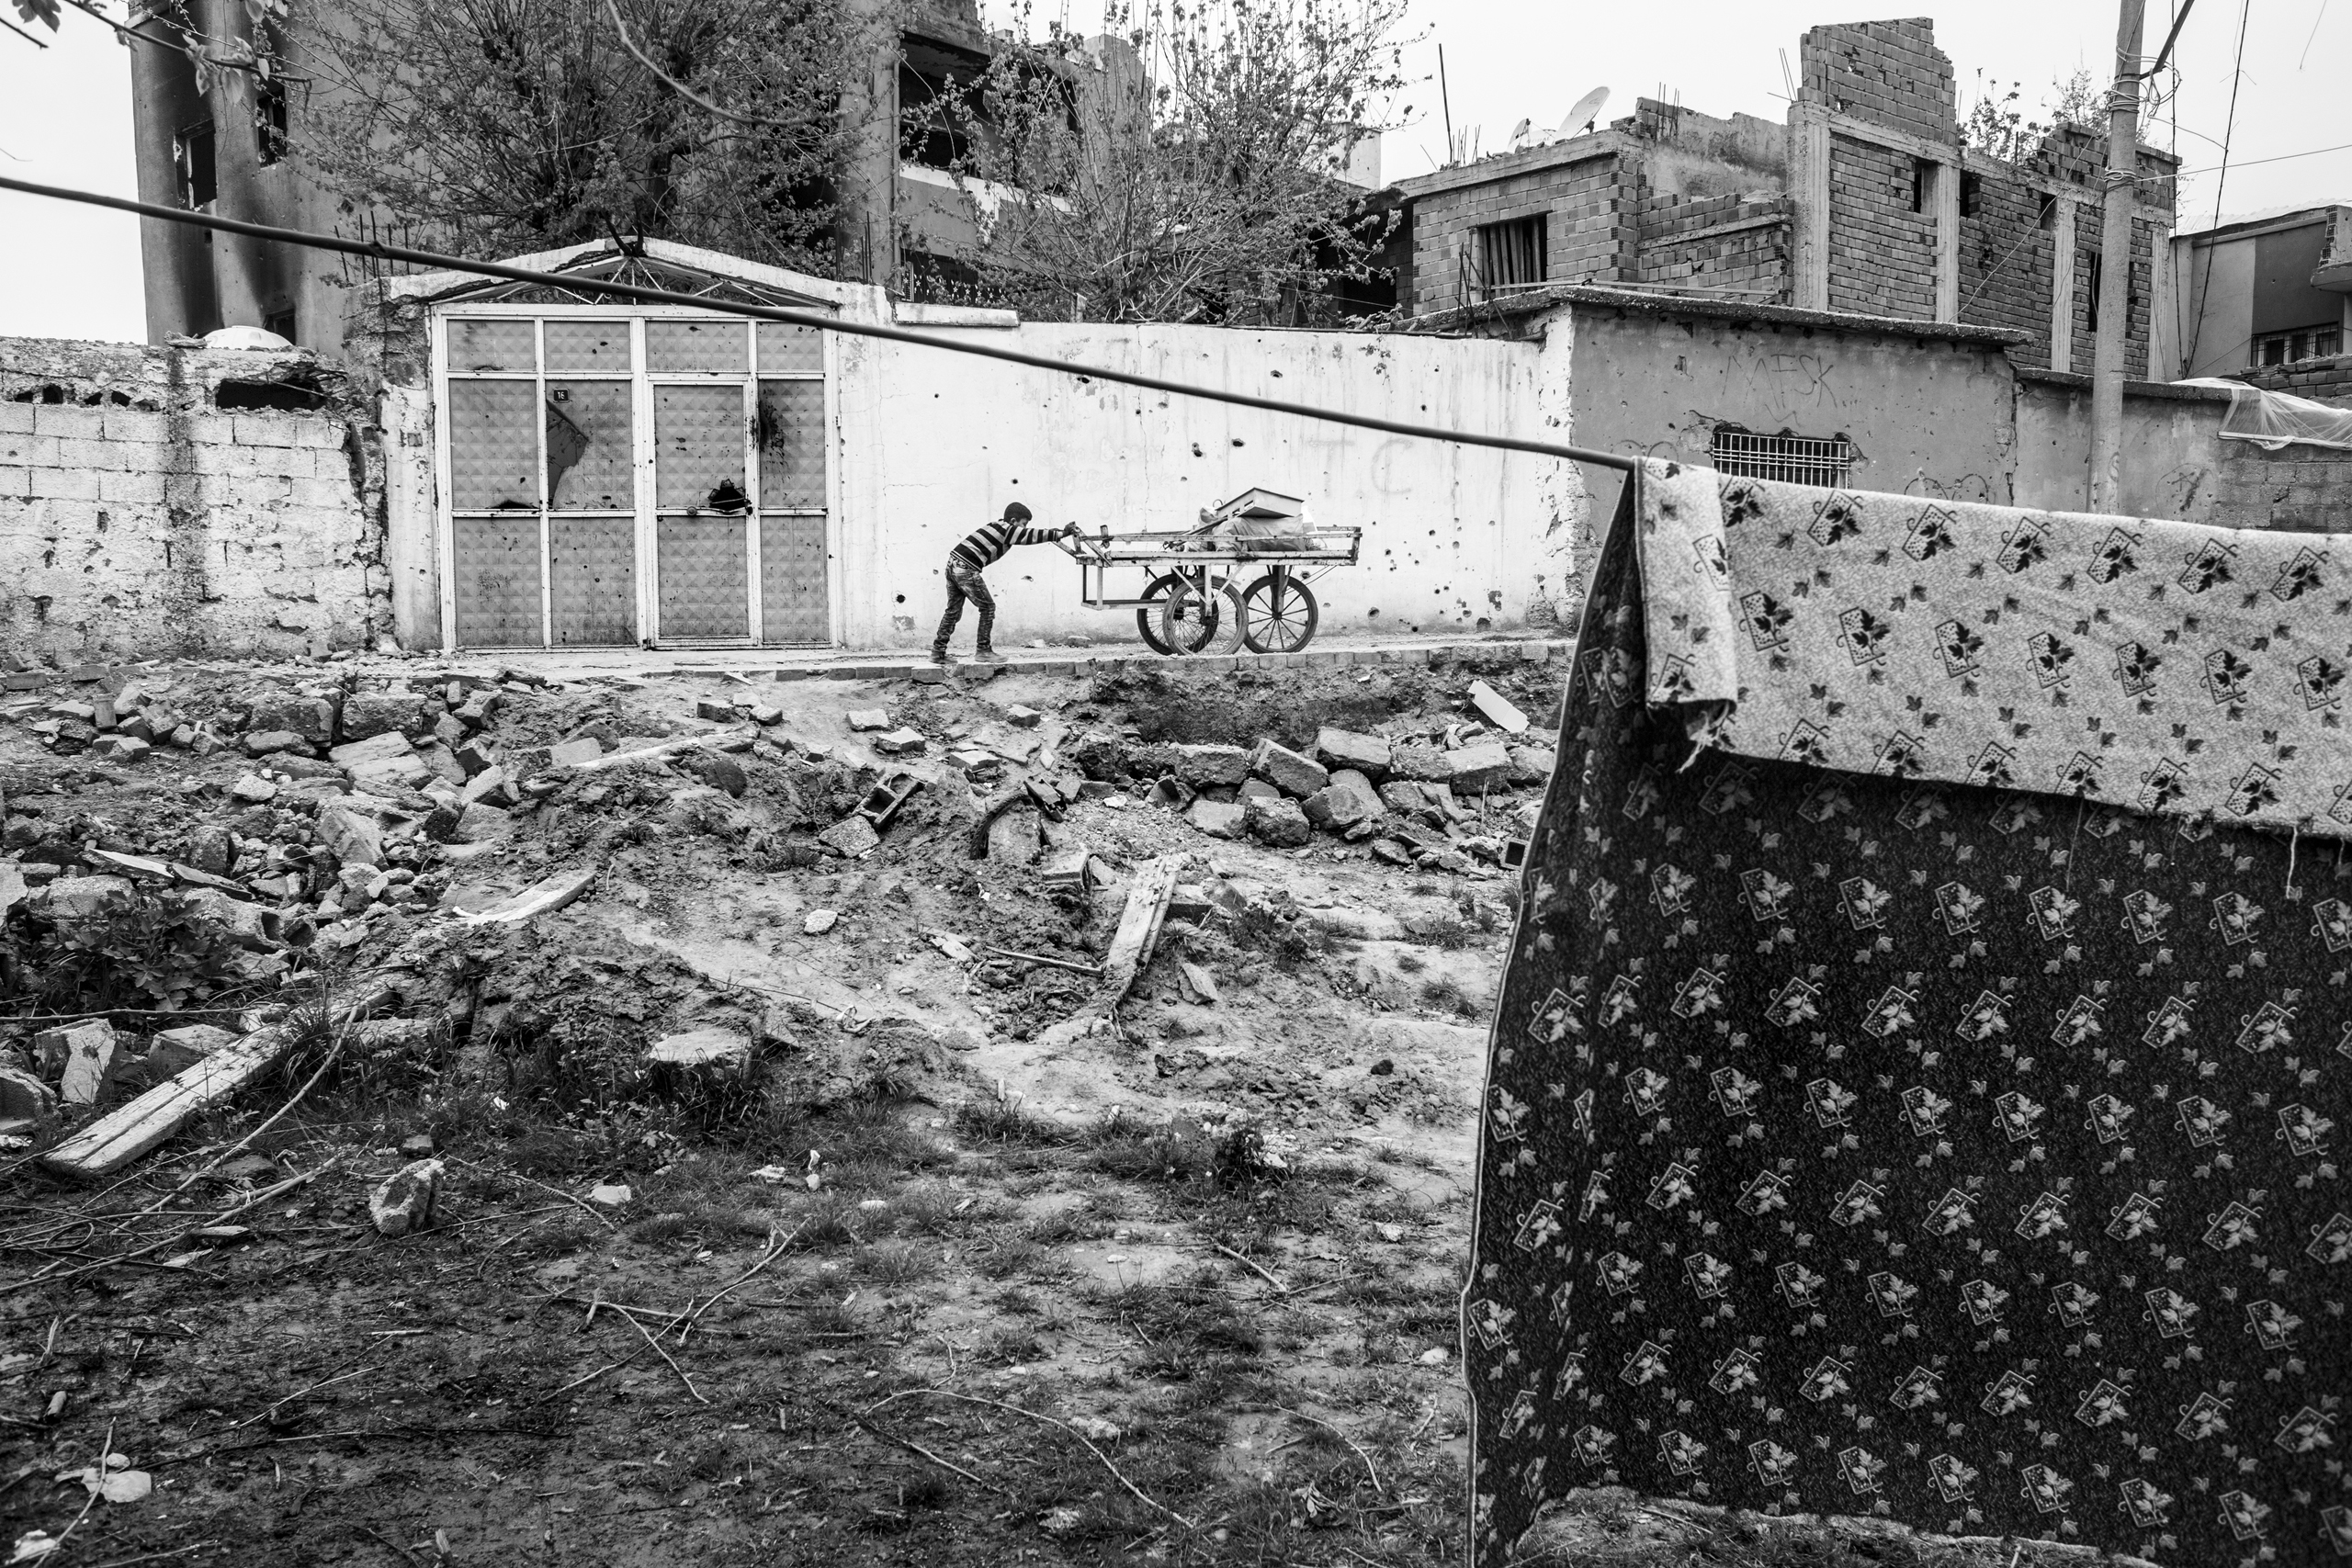 A child carries metal scraps in the ruins of Cizre, southeastern Turkey. The city was ht hard during the curfew imposed by the Turkish government in an attempt to suppress militants, March 2016.